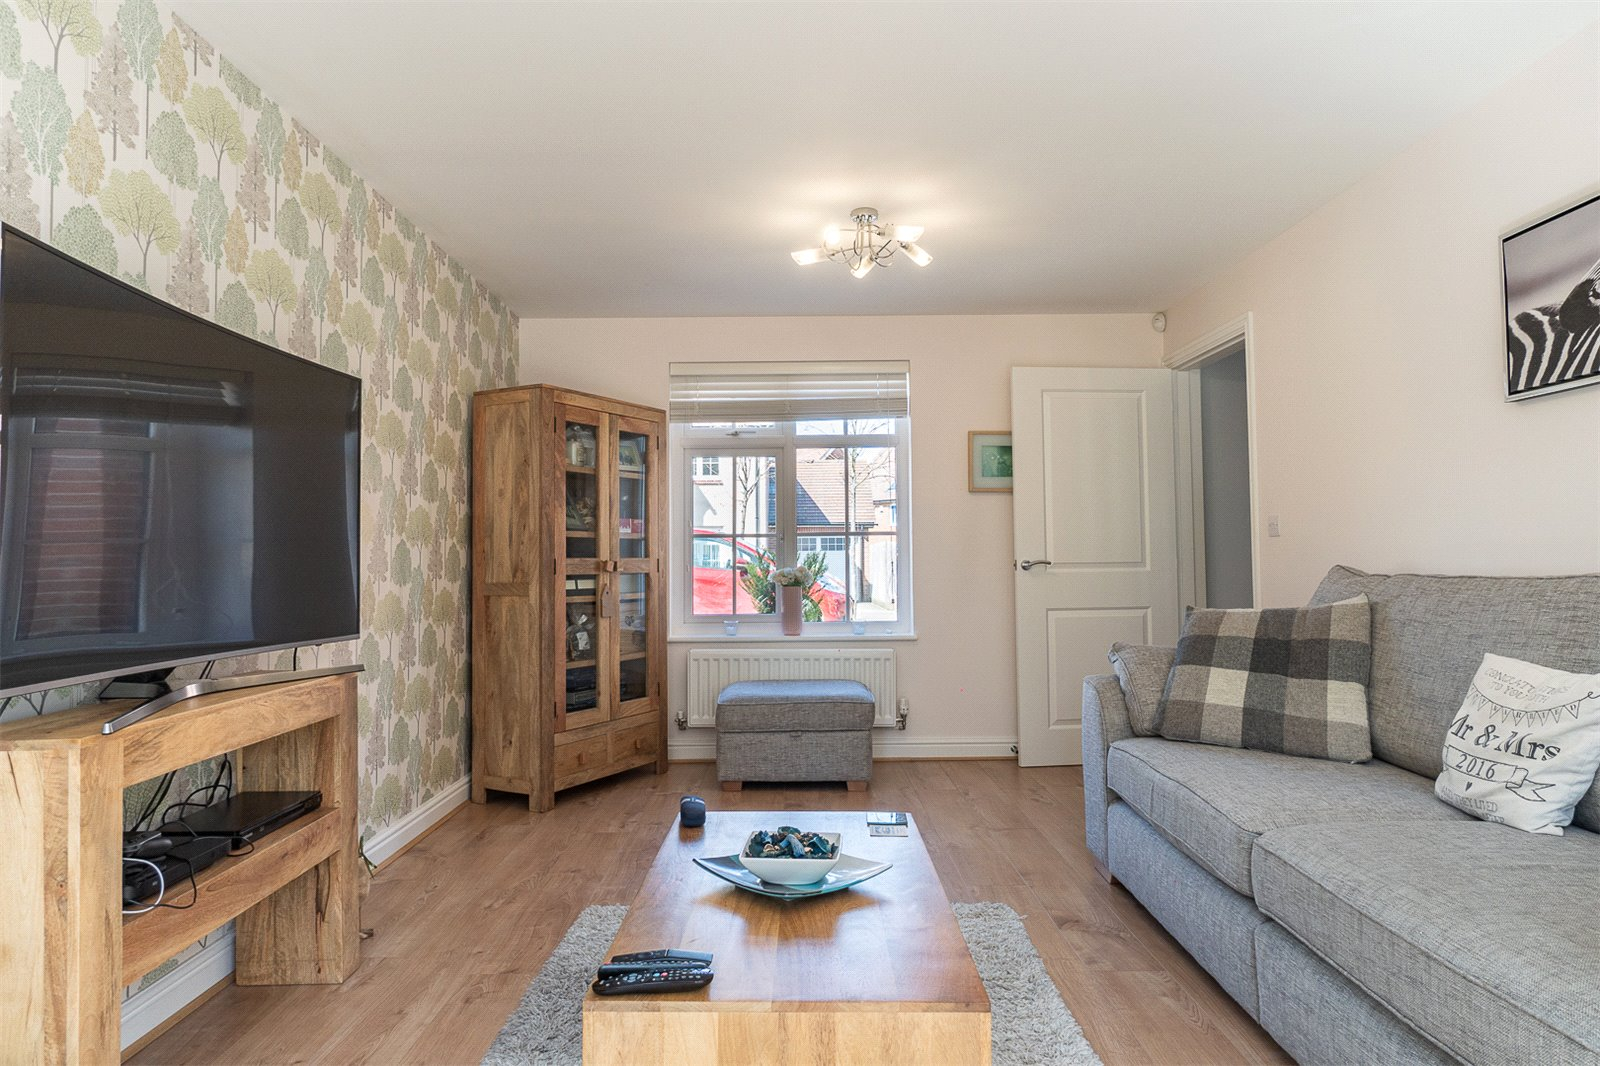 4 bed  for sale in Magdalen Gardens, Maidstone, ME15